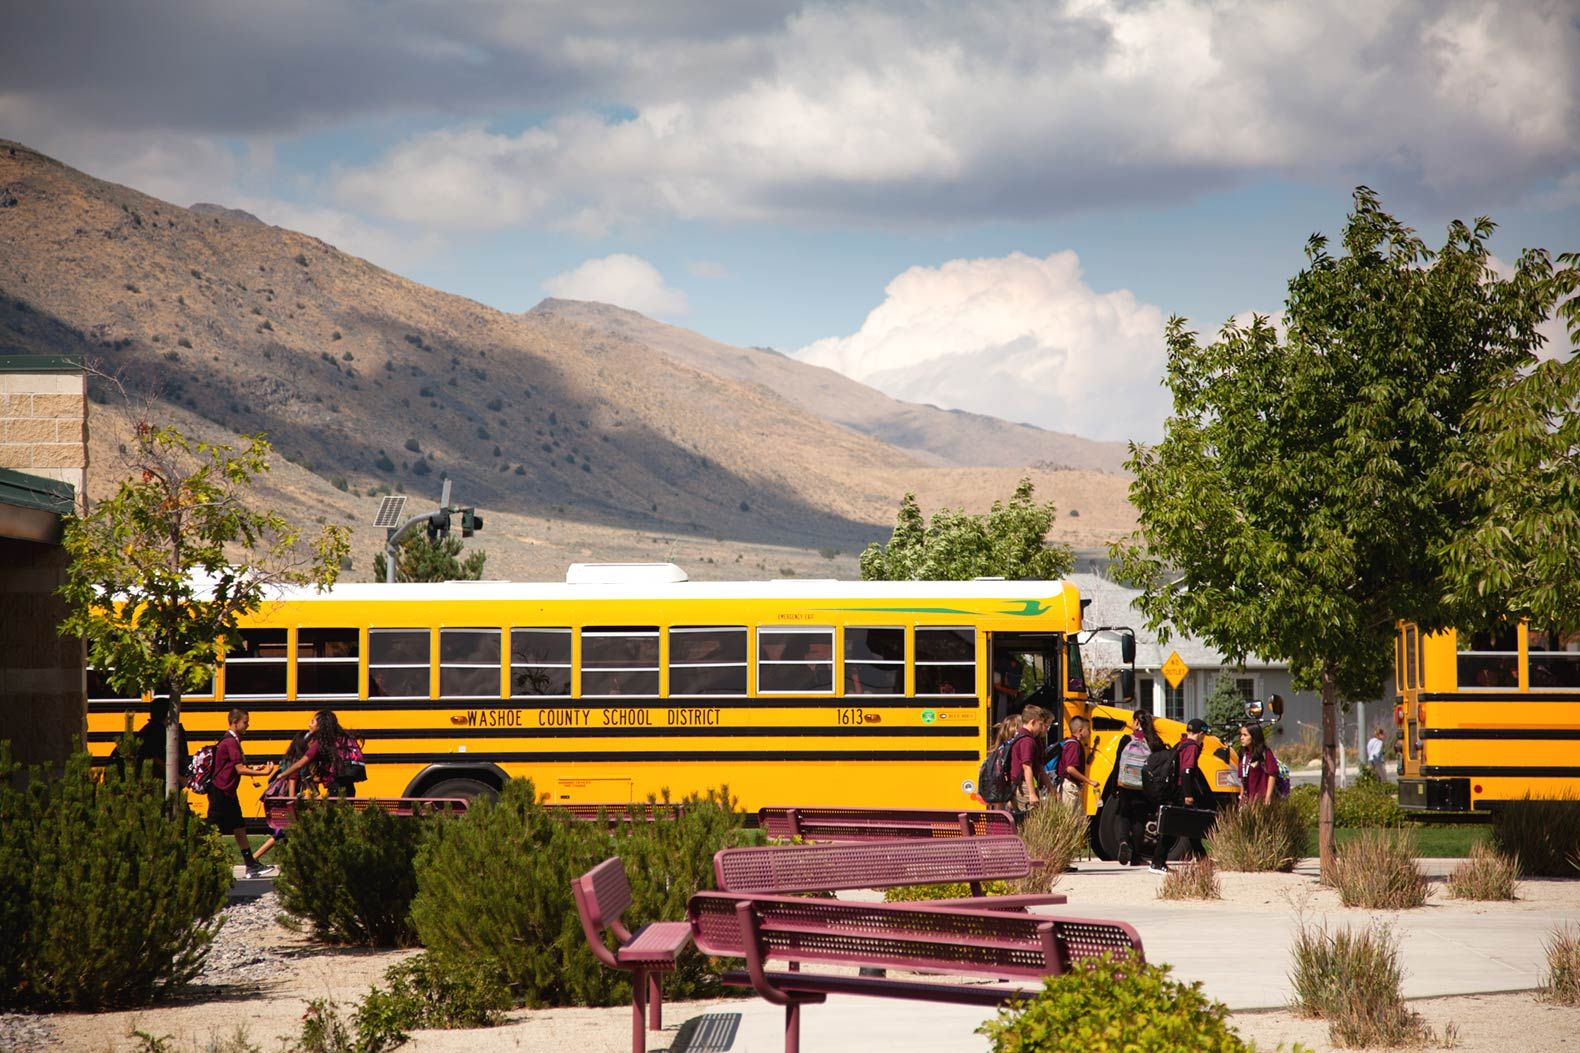 Cold Springs Middle School is located in a rural area roughly 20 miles from Reno. Wild horses sometimes roam the roads near the school.